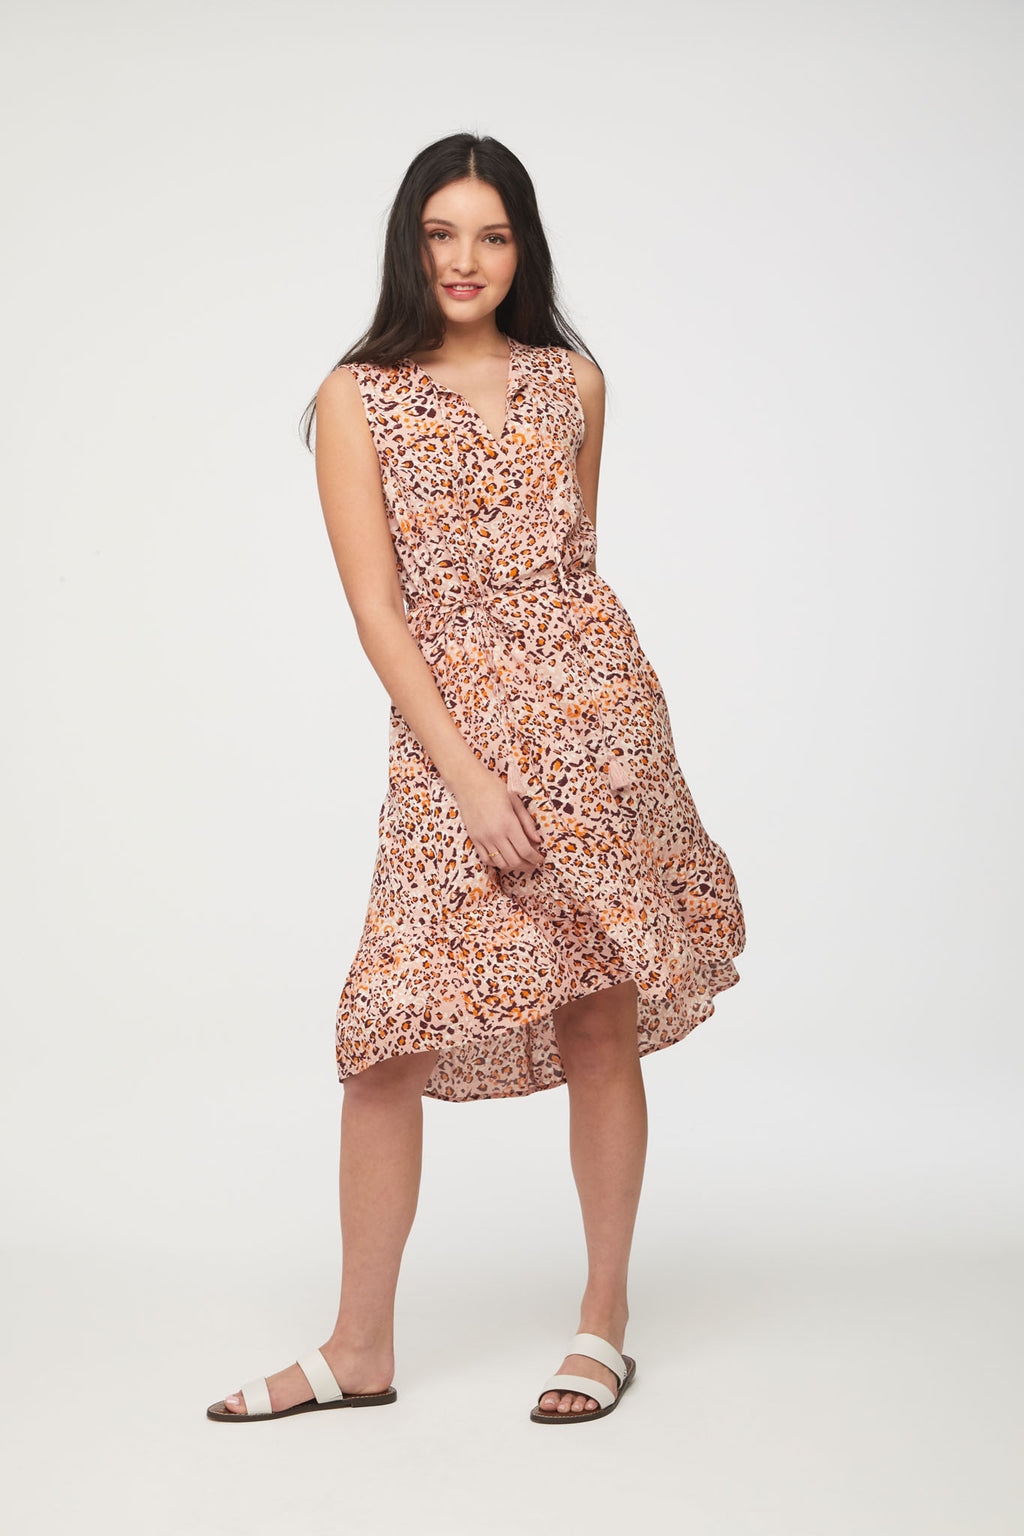 LOU LOU DRESS - GET SPOTTY